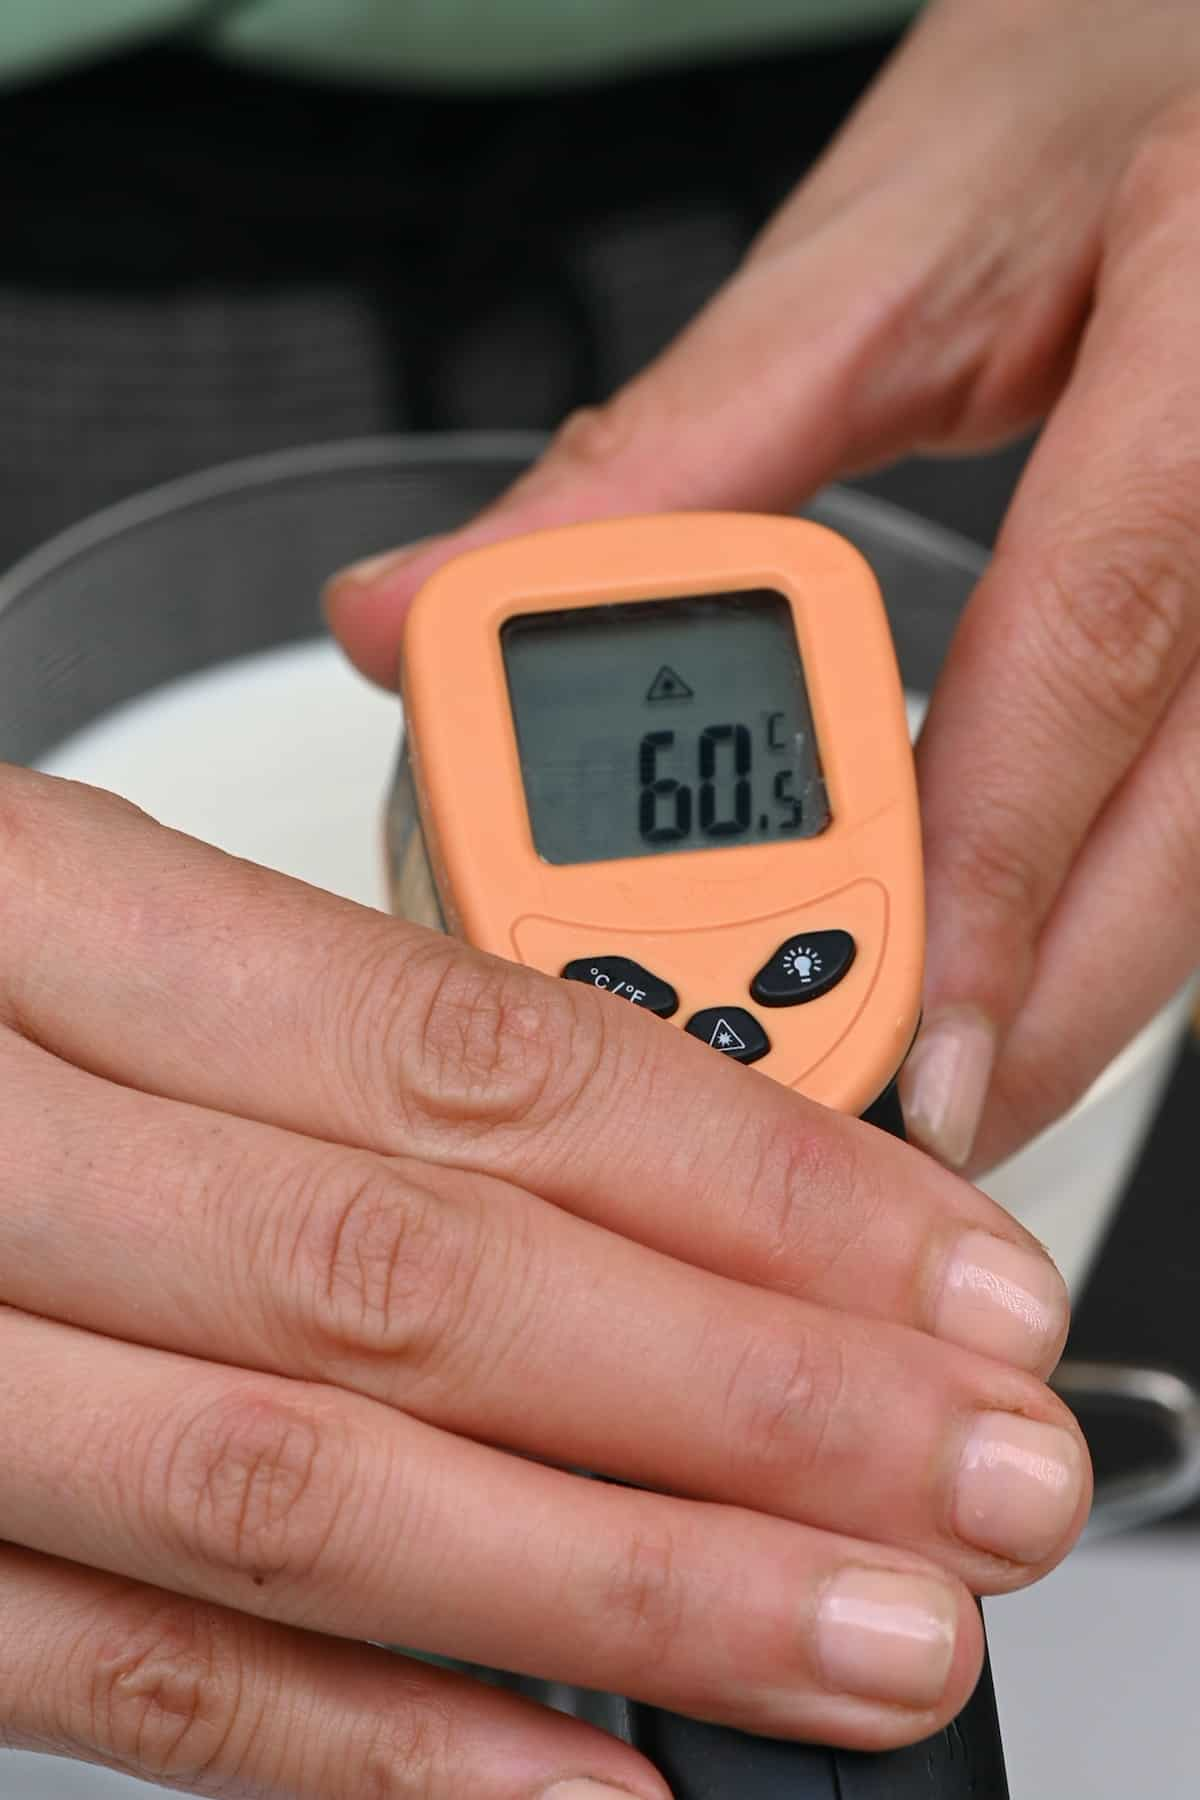 Checking the temperature of heated milk